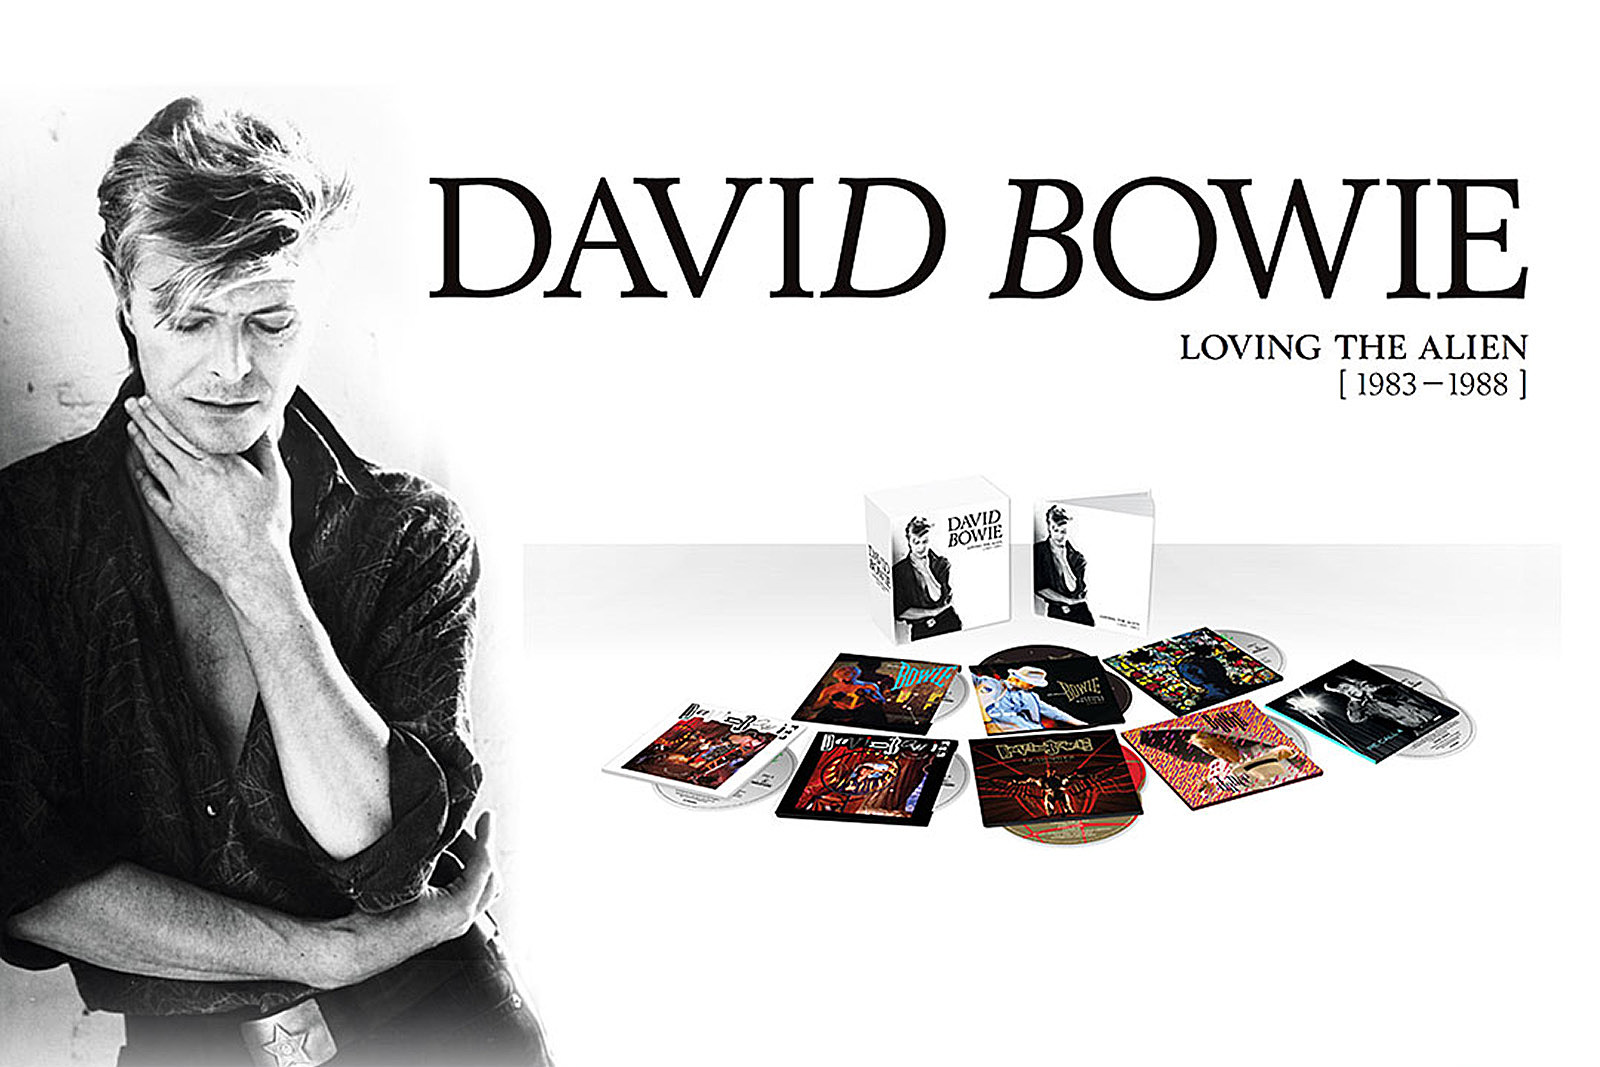 David Bowie '80s Box Set Includes Unreleased Music